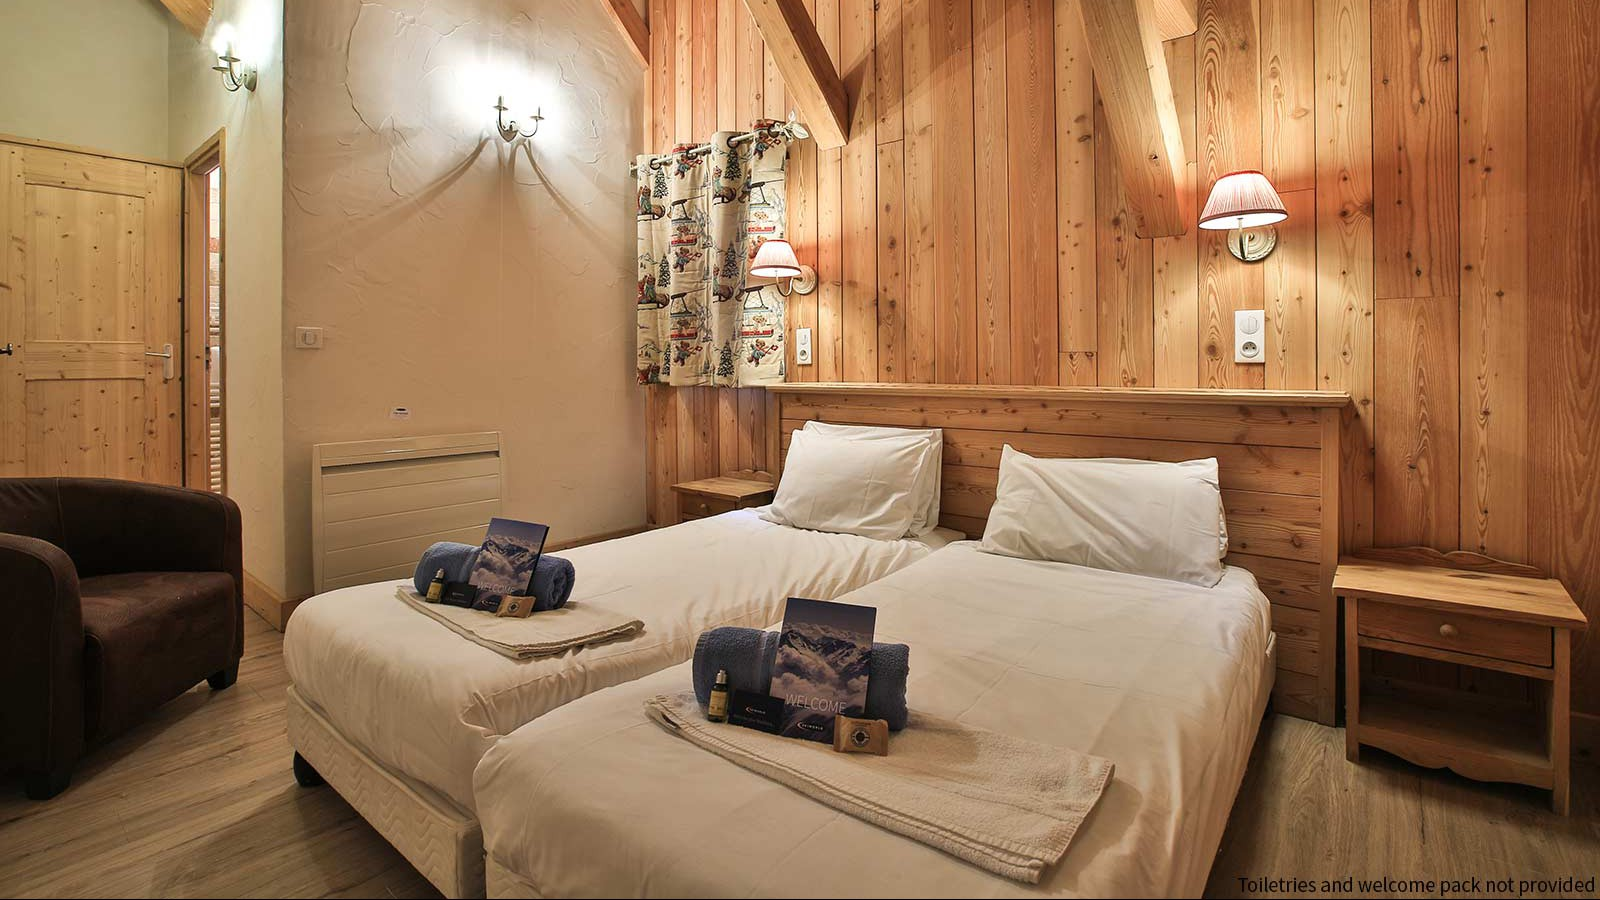 Bedroom, Chalet St Moritz - Ski Chalet in La Plagne, France